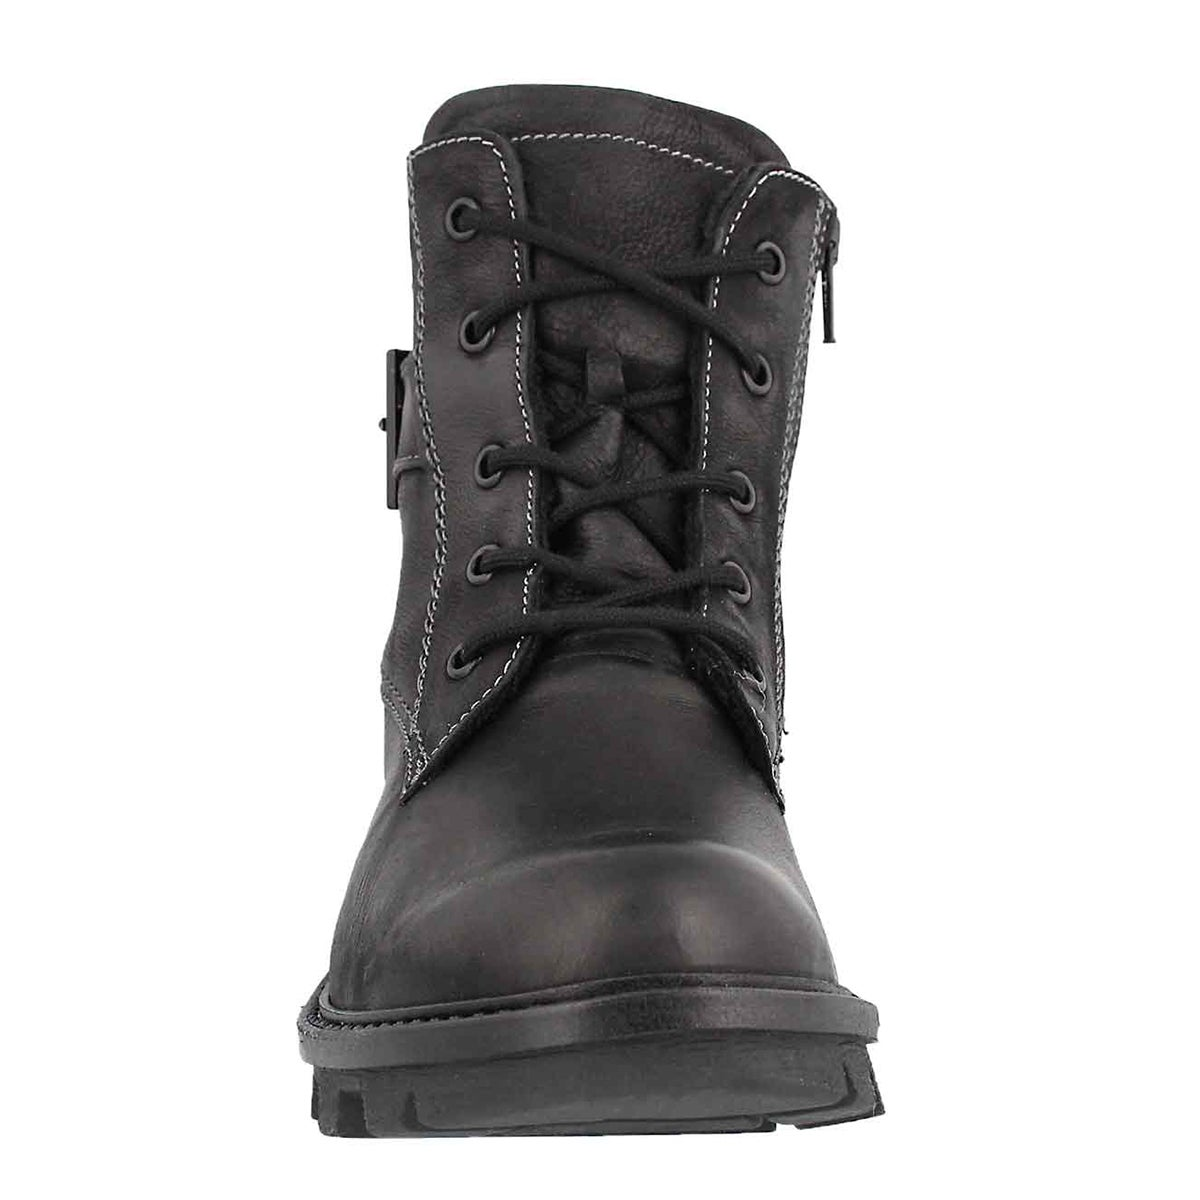 Lds Marilyn 03 schwarz lace up boot